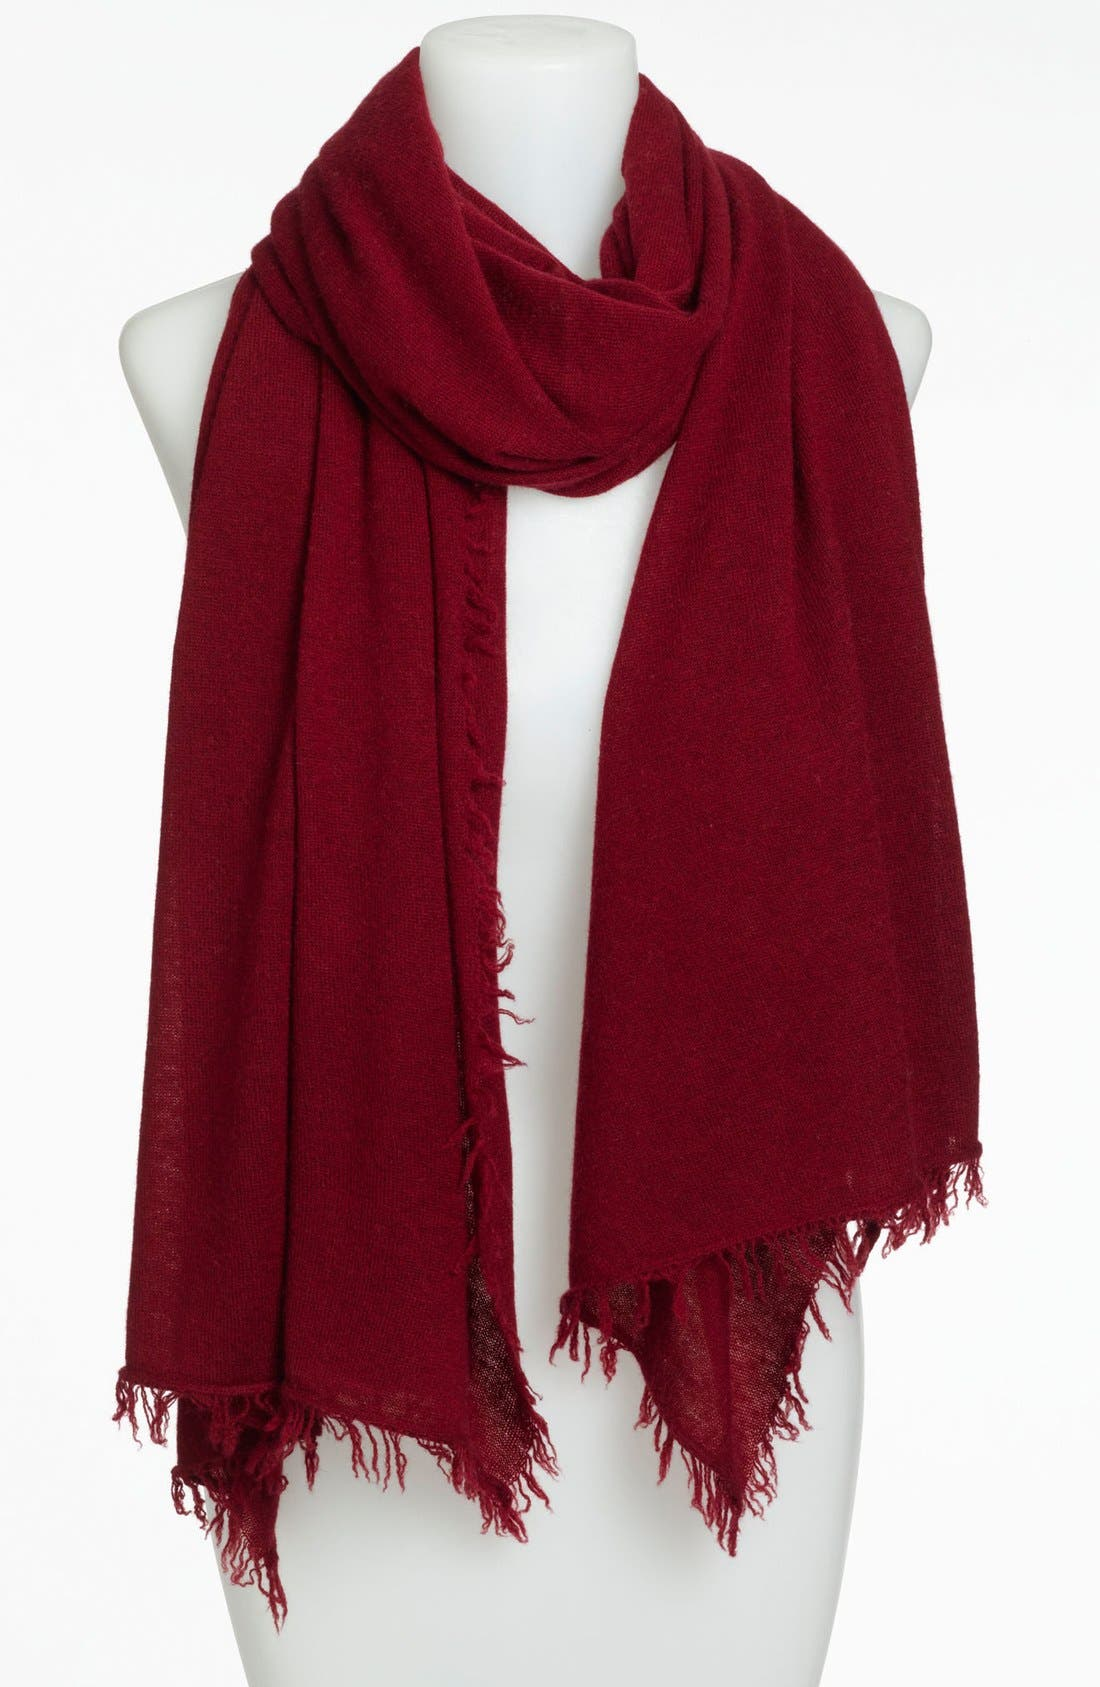 Alternate Image 1 Selected - Nordstrom Collection Cashmere Wrap (Special Purchase)